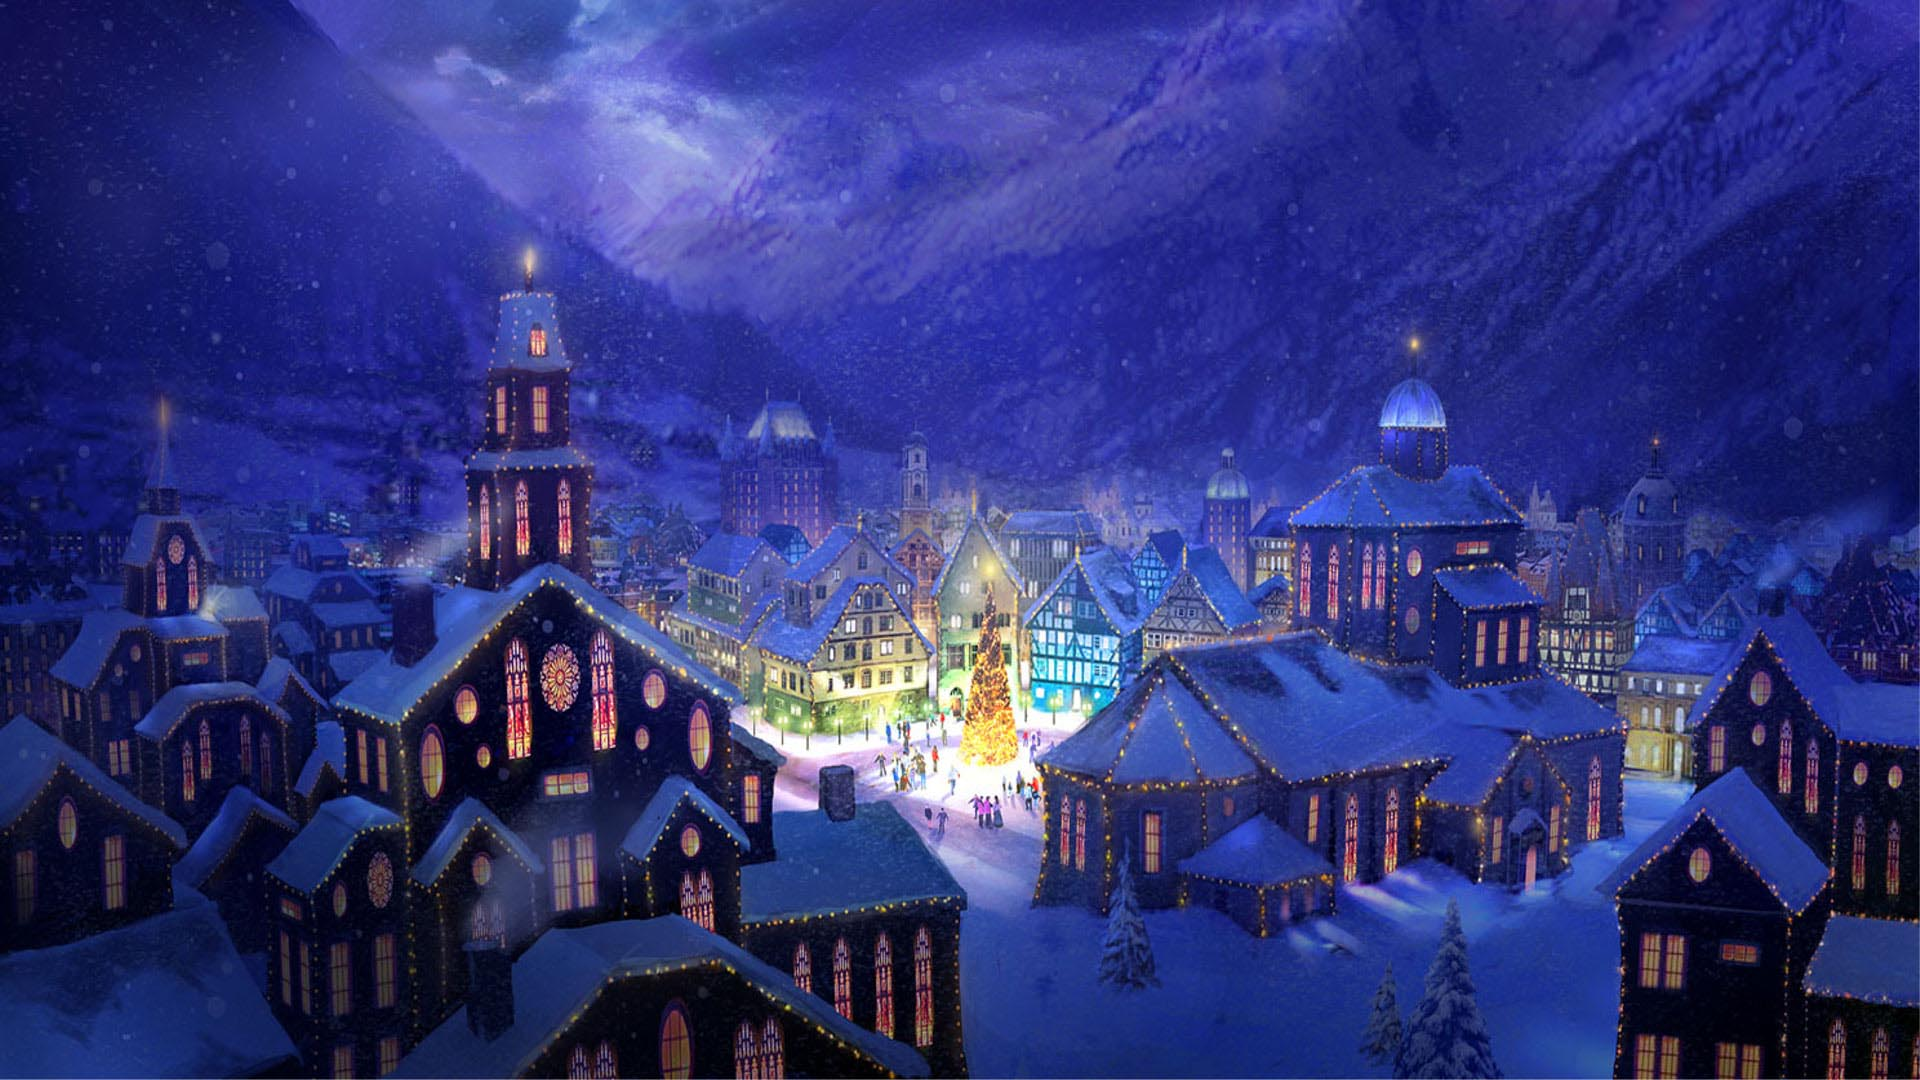 Christmas Village Wallpaper